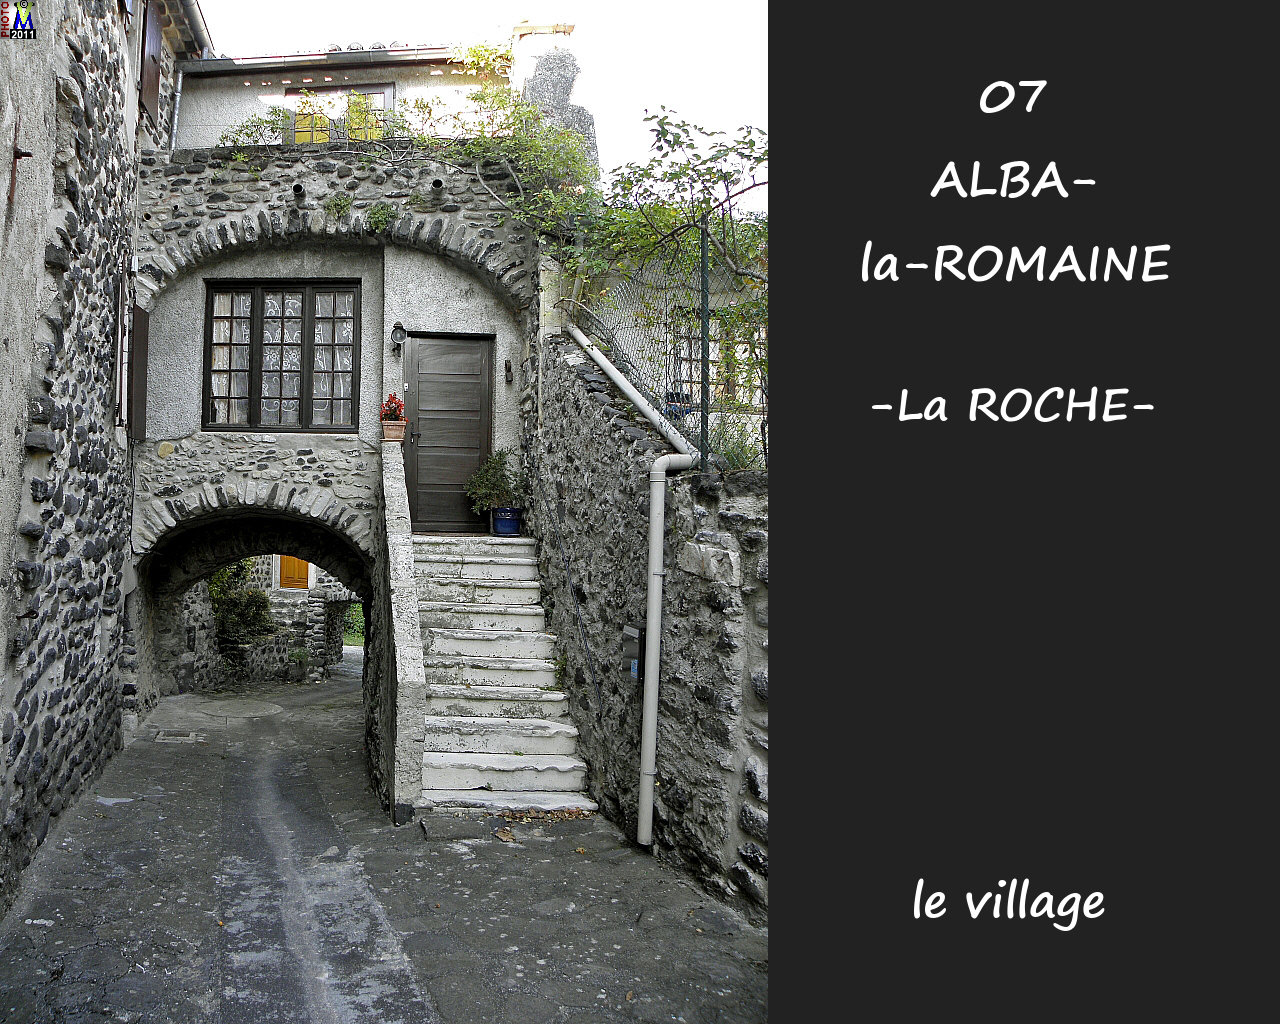 07ALBA-ROMAINEzROCHE_village_126.jpg